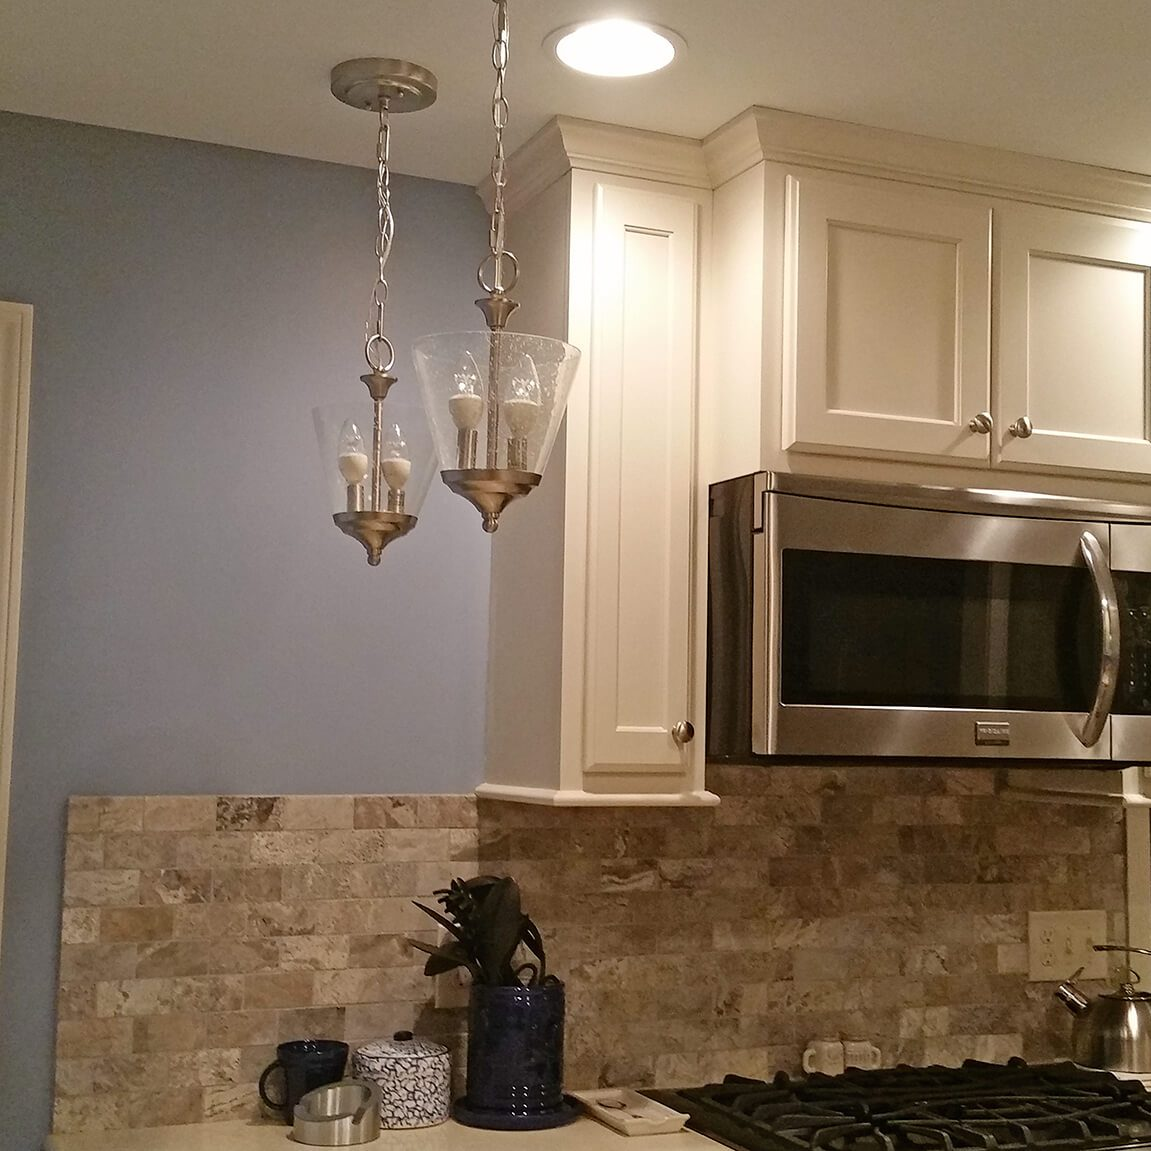 Kinetic Kitchen and Bath Kitchen Photo for gallery page after a remodel